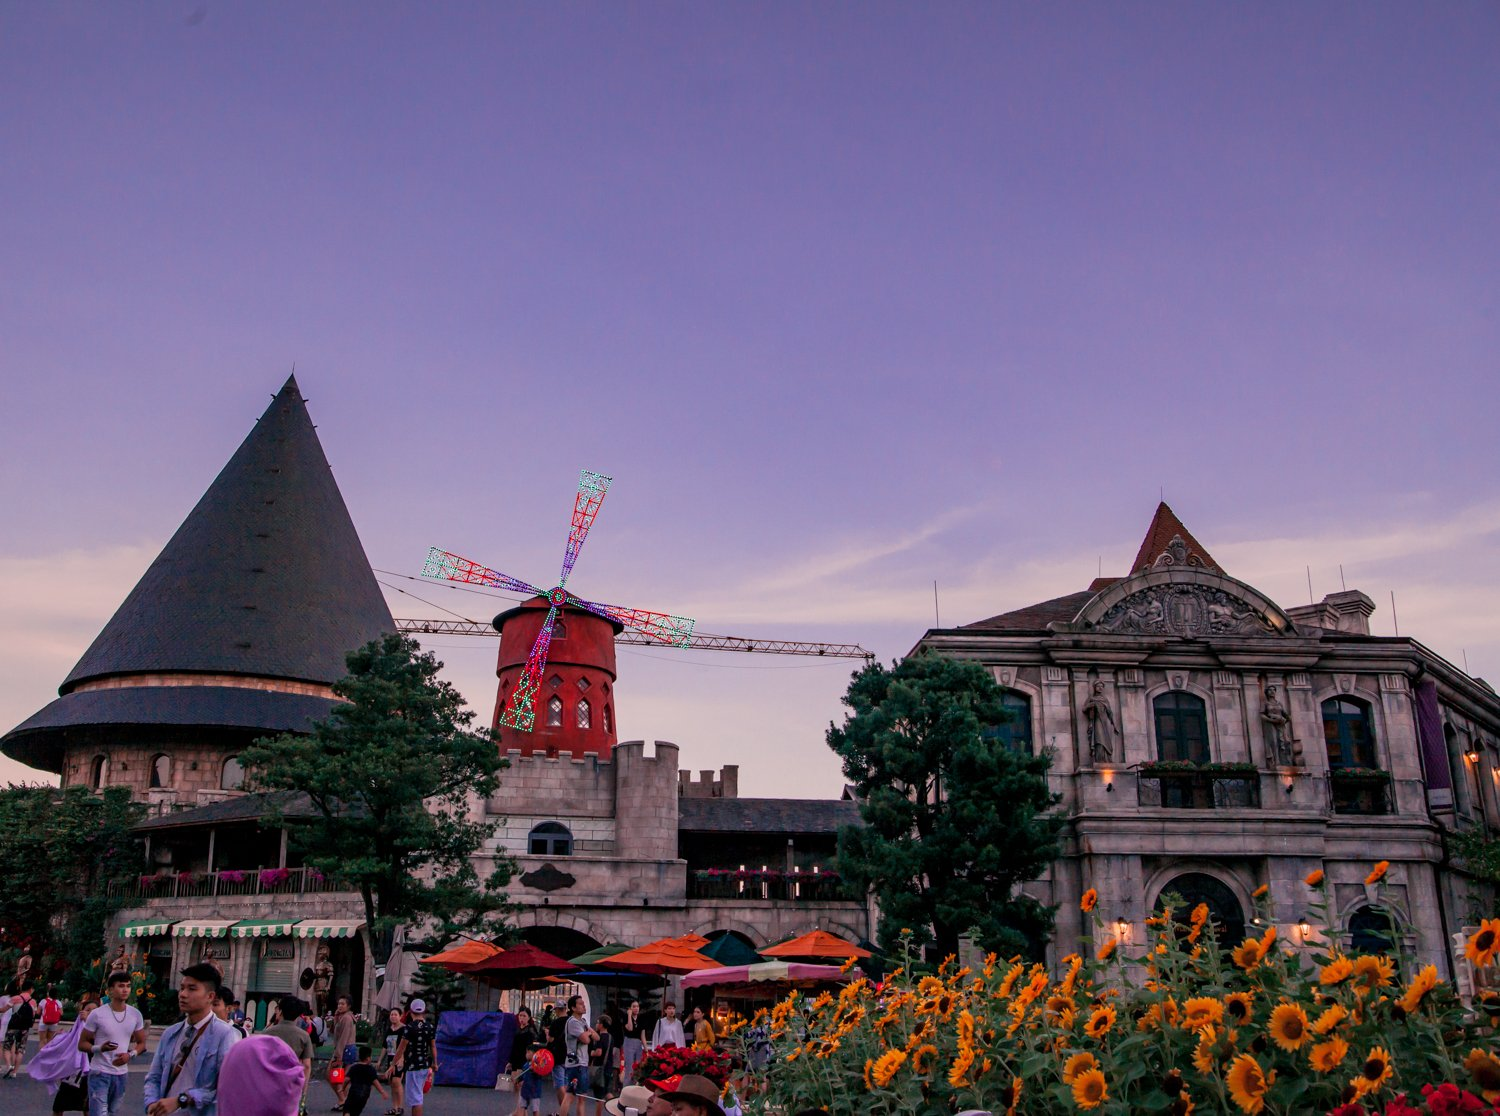 The Moulin Rouge during sunset at Ba Na Hills